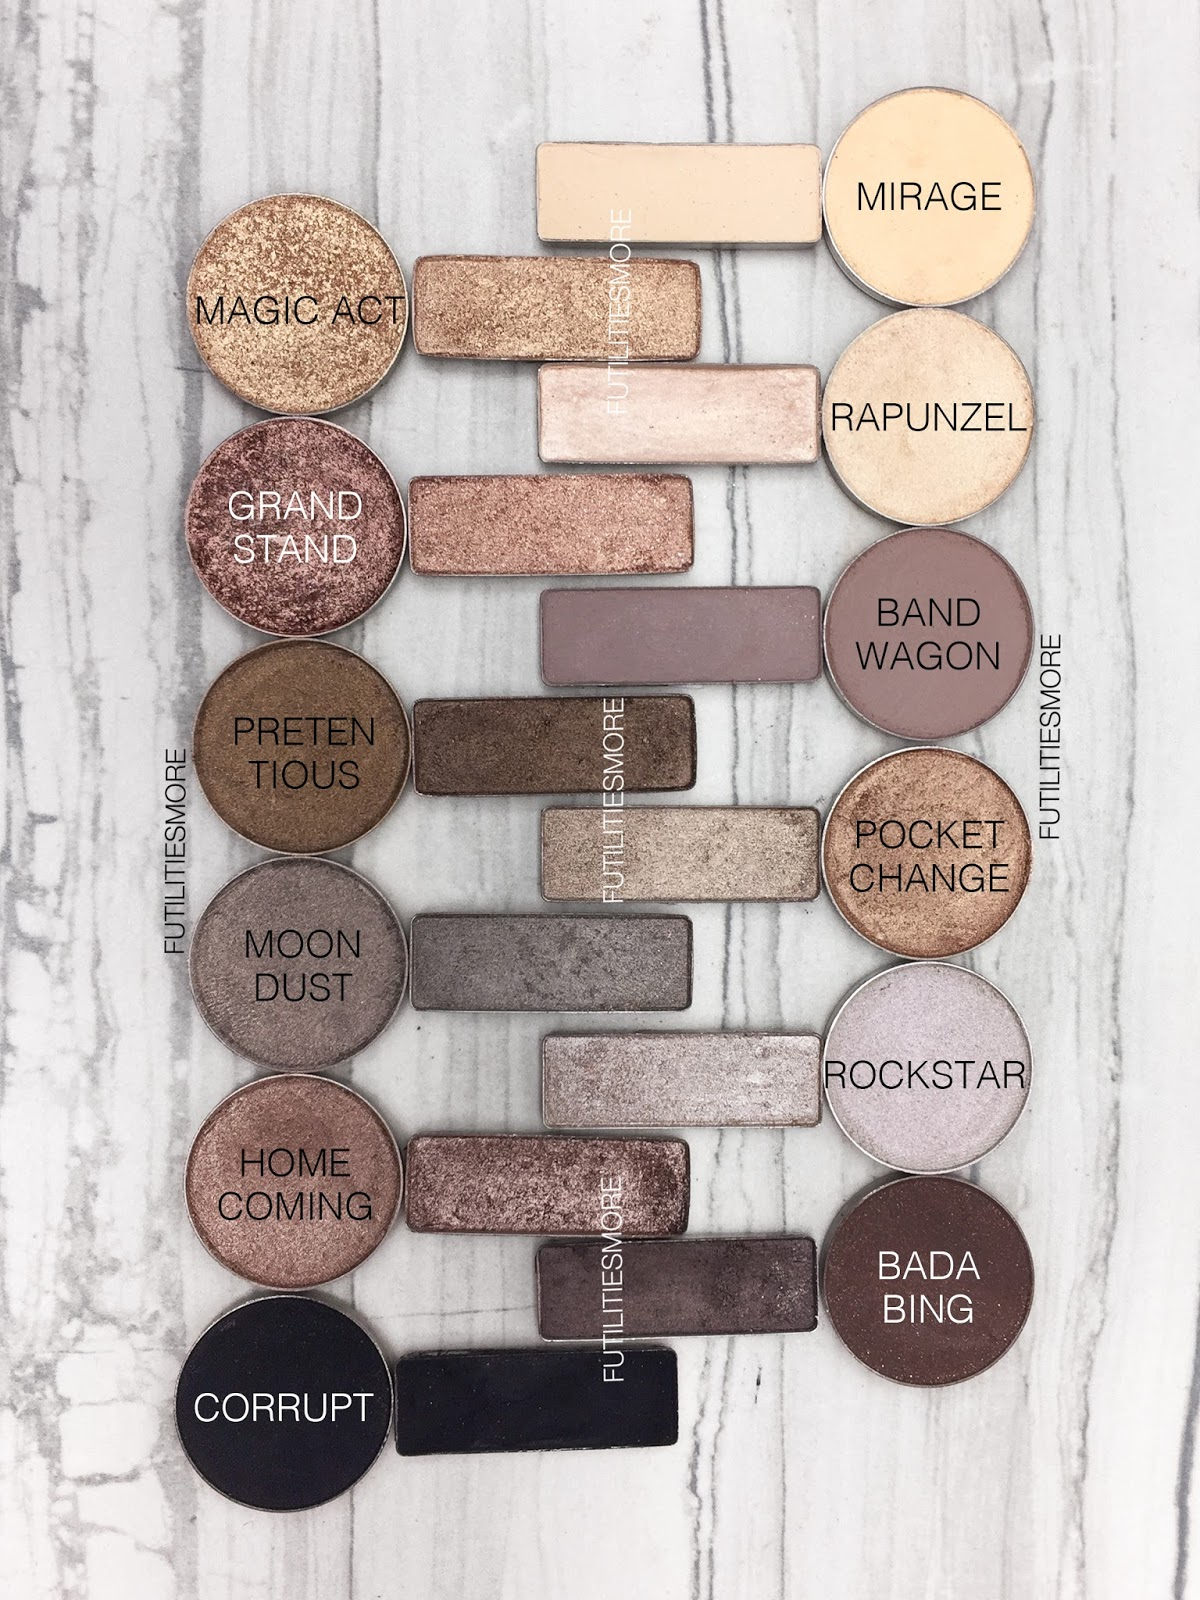 Urban Decay Naked 2 Palette Dupes With Makeup Geek Eyeshadows-3799